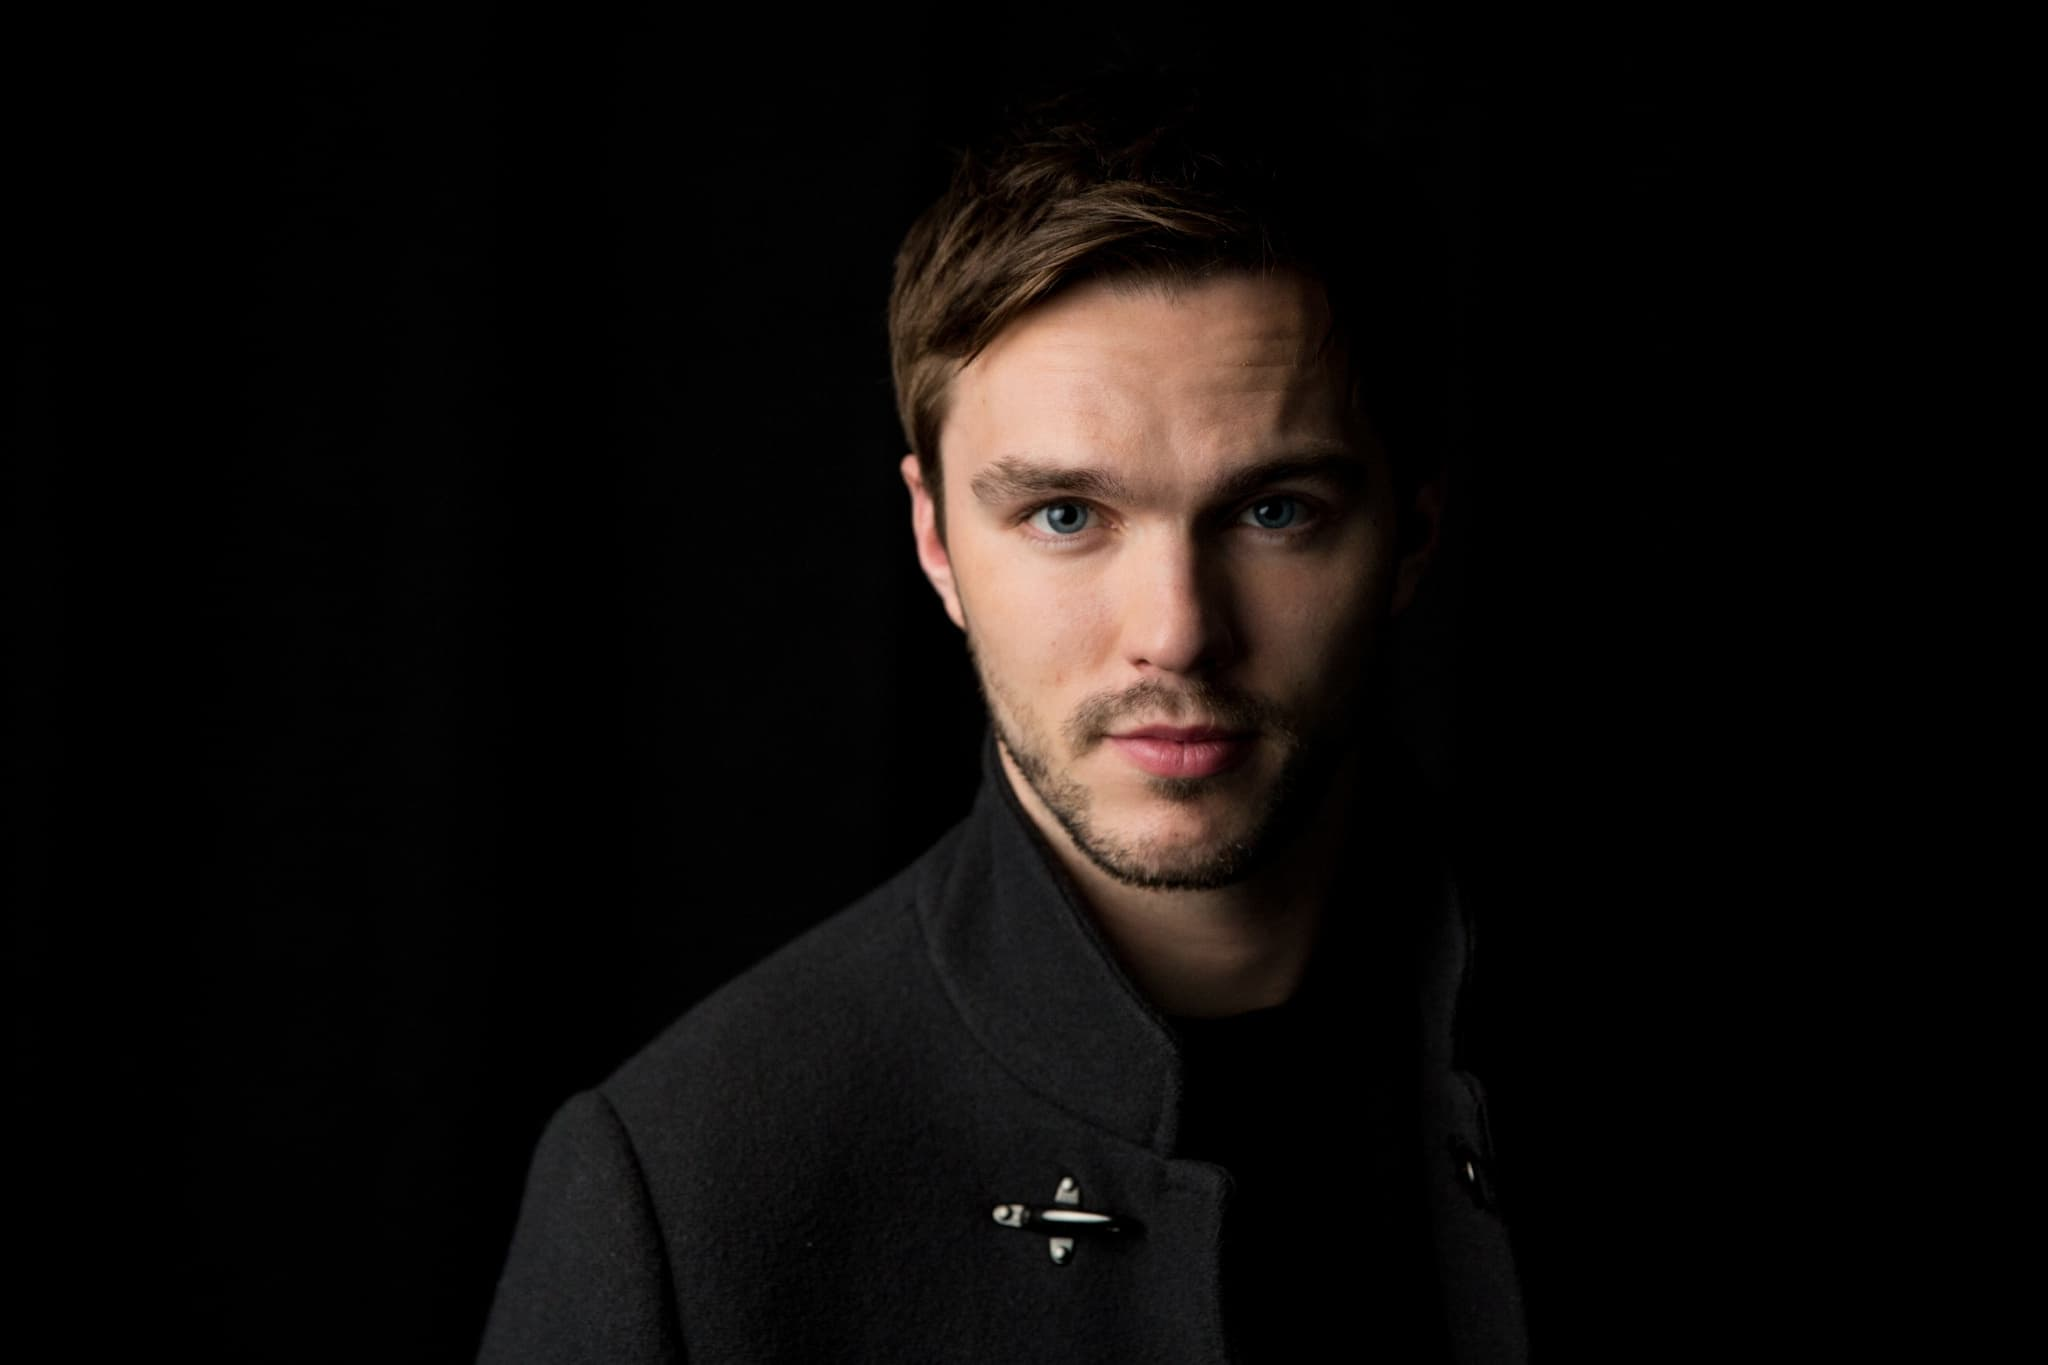 pictures of Nicholas Hoult a single man full HD